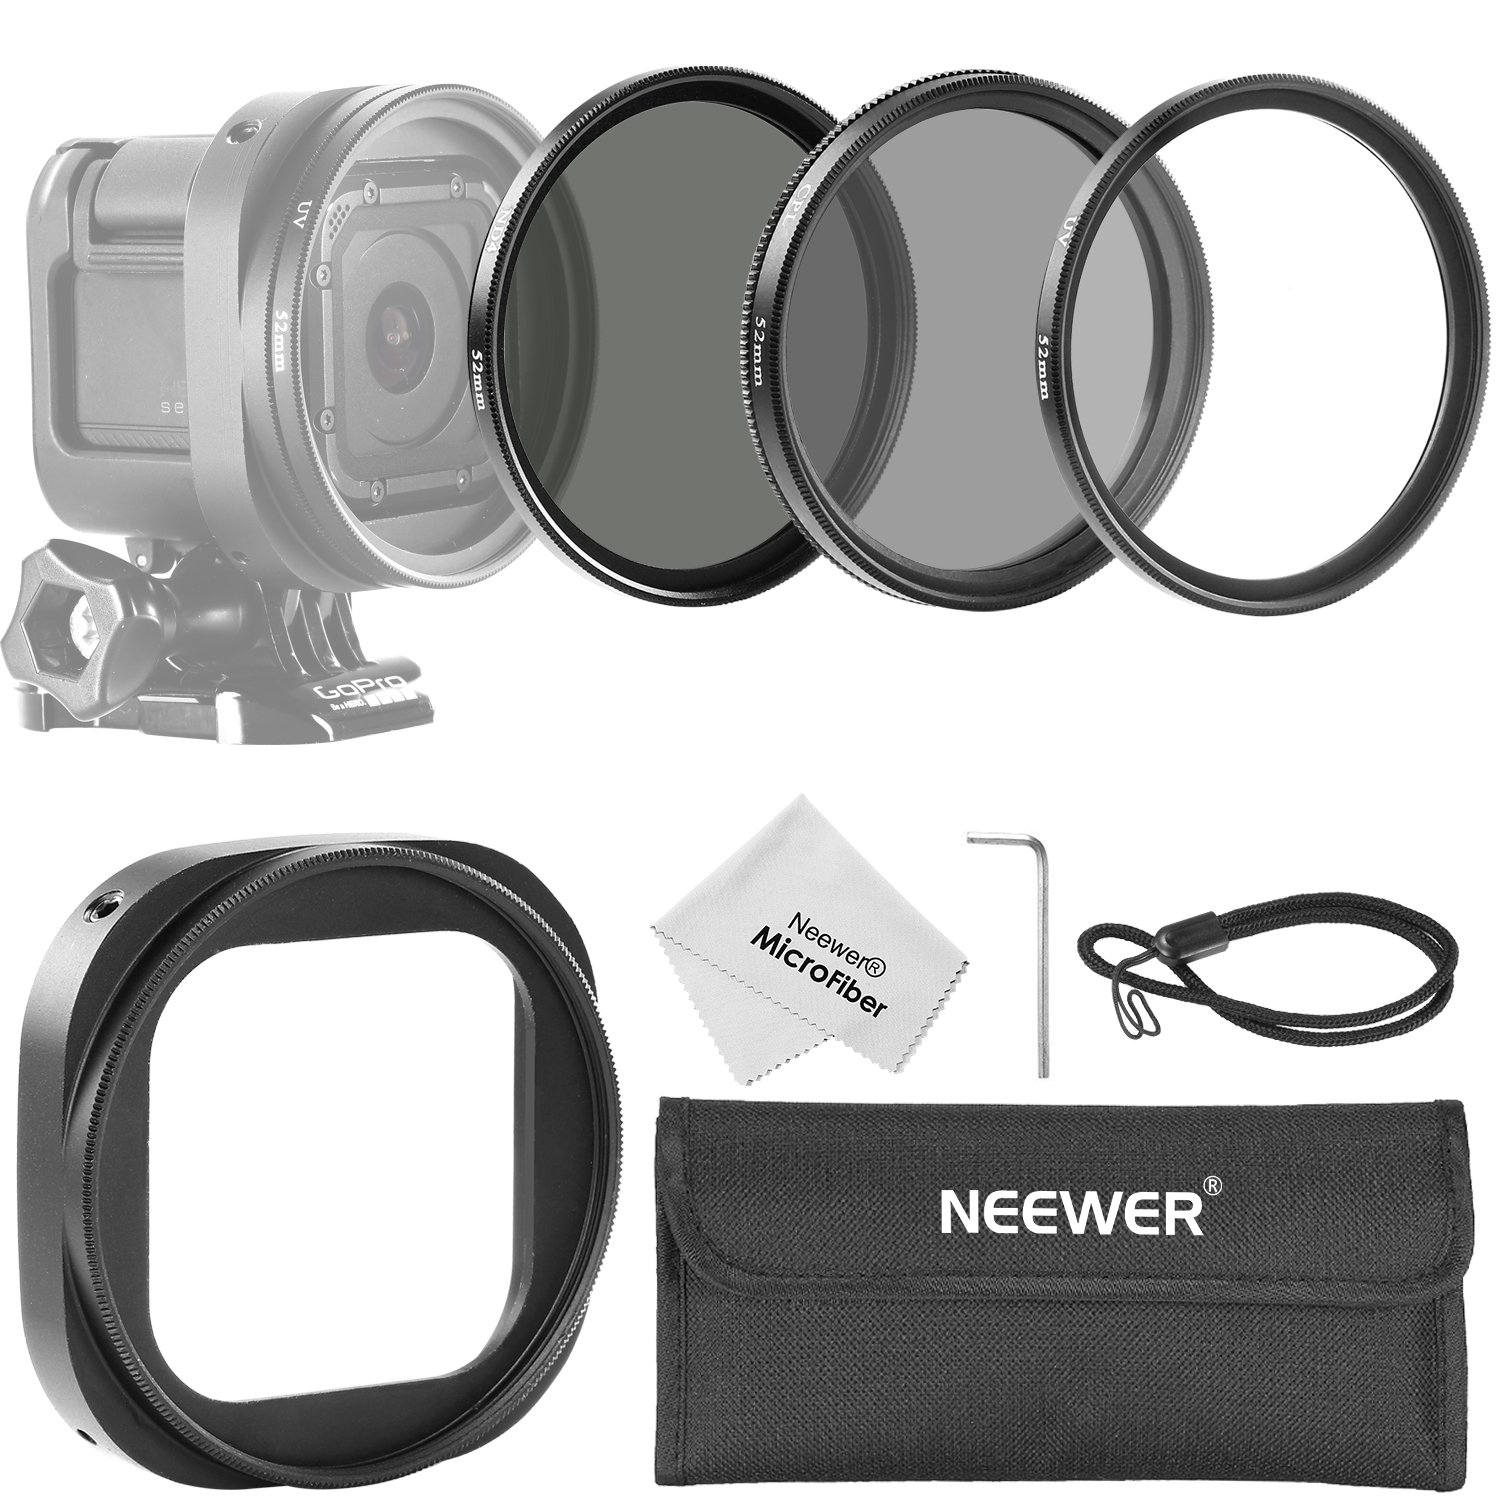 Neewer 52MM Filter GoPro Session Image 1